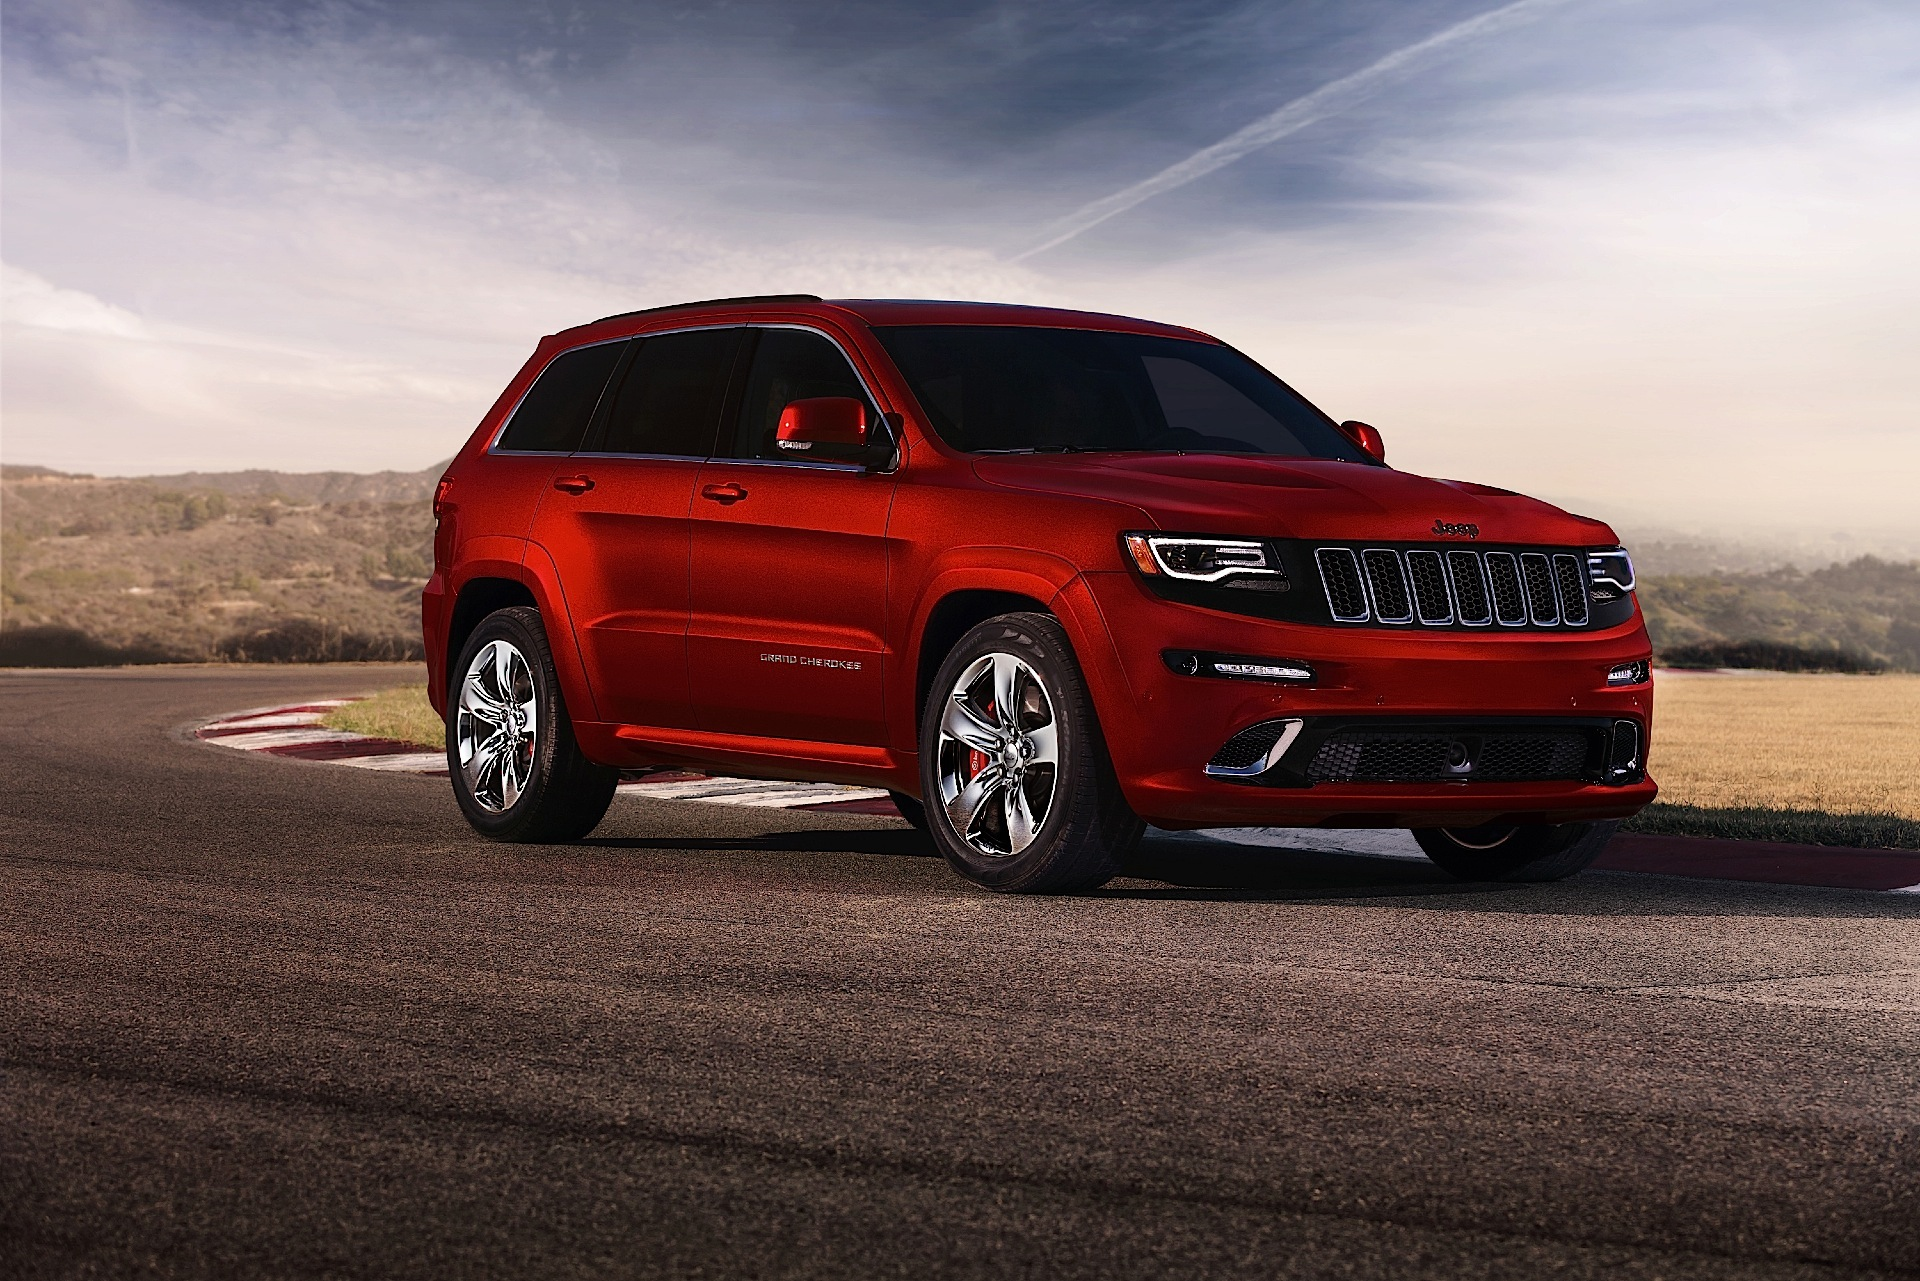 jeep grand cherokee srt specs 2013 2014 2015 2016 2017 2018 autoevolution. Black Bedroom Furniture Sets. Home Design Ideas